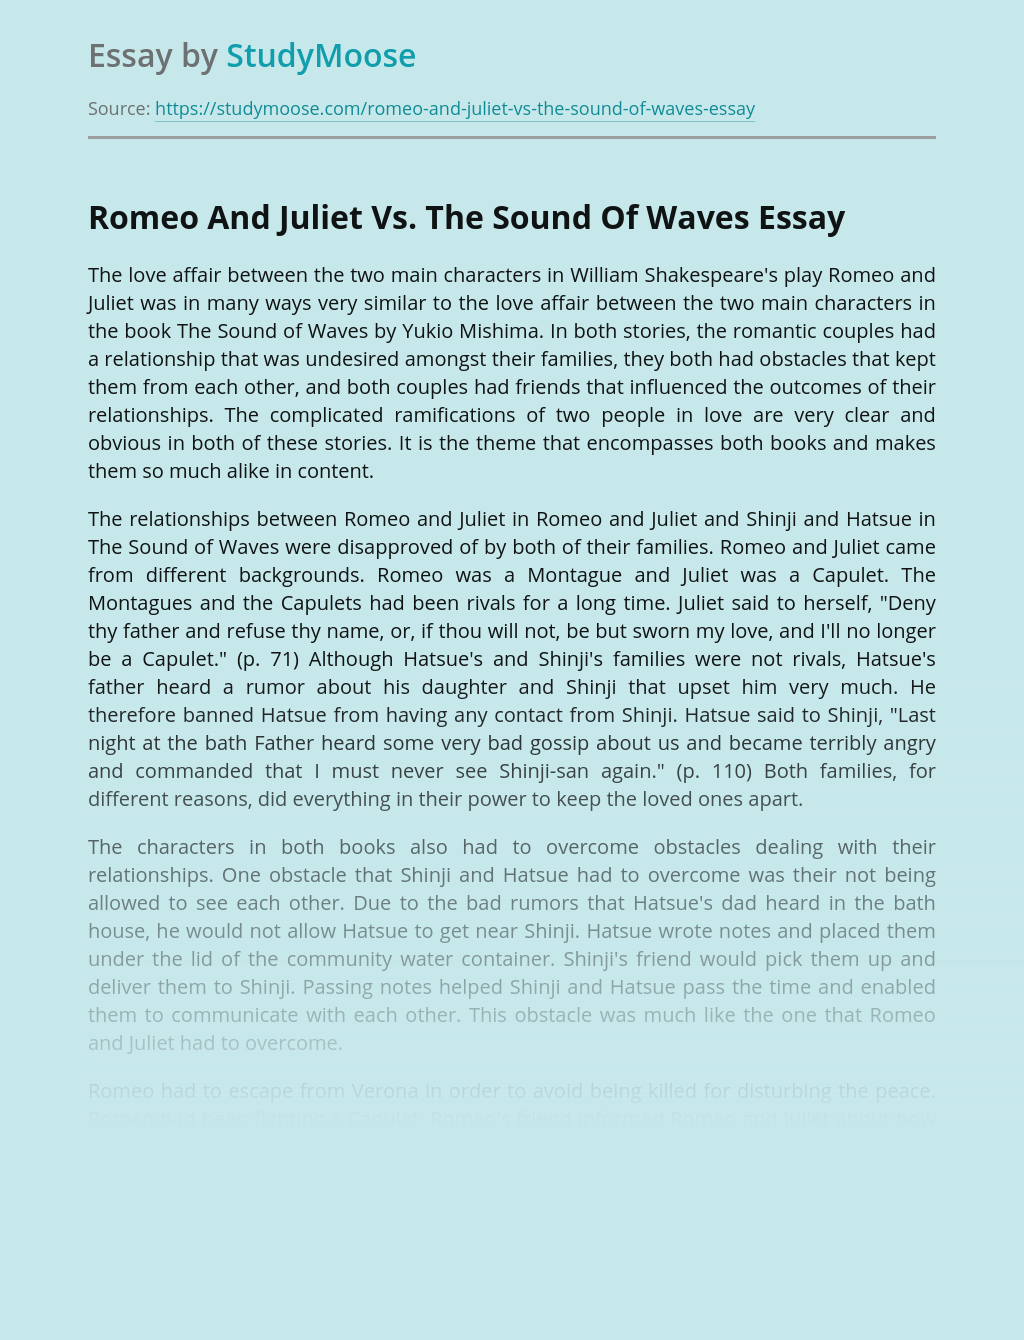 Romeo And Juliet Vs. The Sound Of Waves